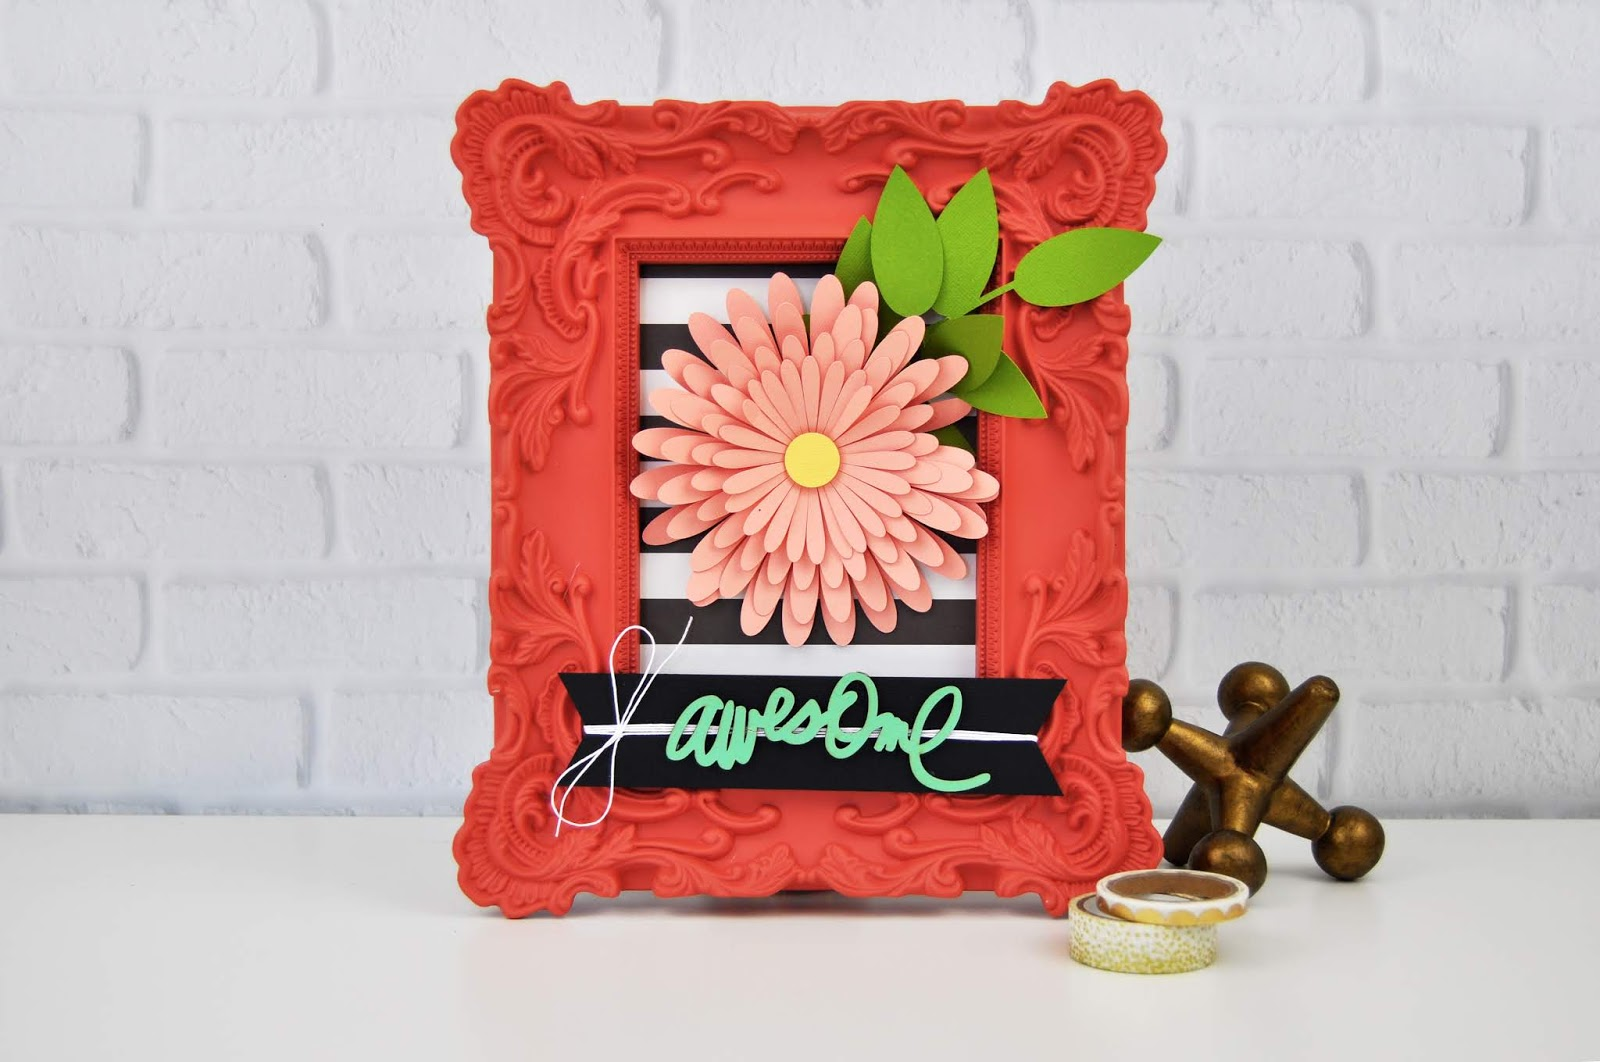 3D Flower Frame paper craft by Jen Gallacher sponsored by Scrapbook.com. #papercraft #frame #paperflower #jengallacher #scrapbookdotcom